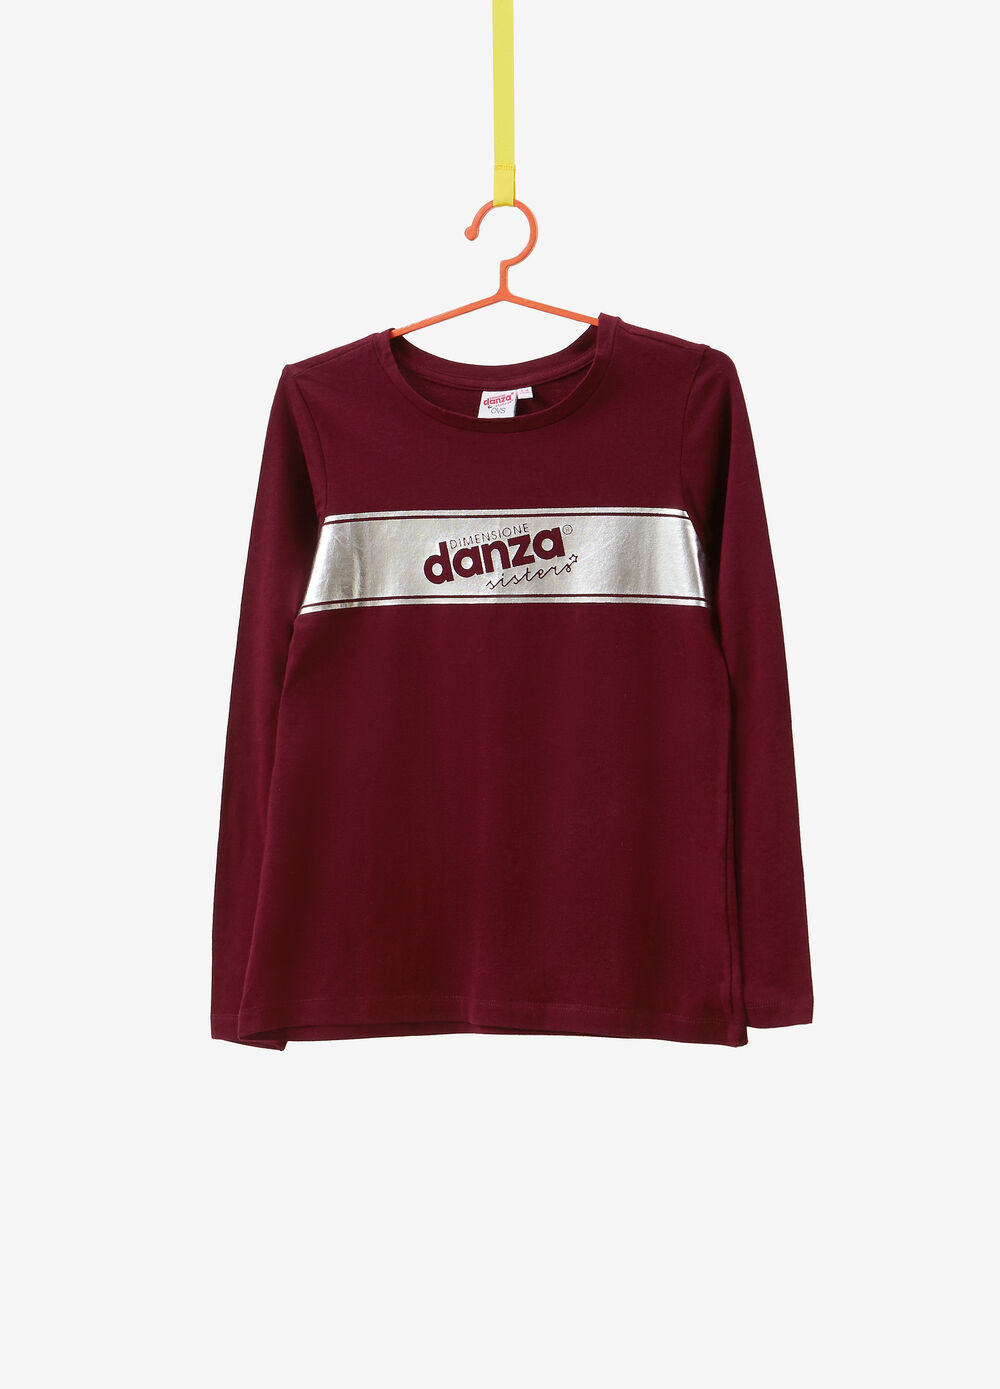 Dimensione Danza stretch cotton T-shirt